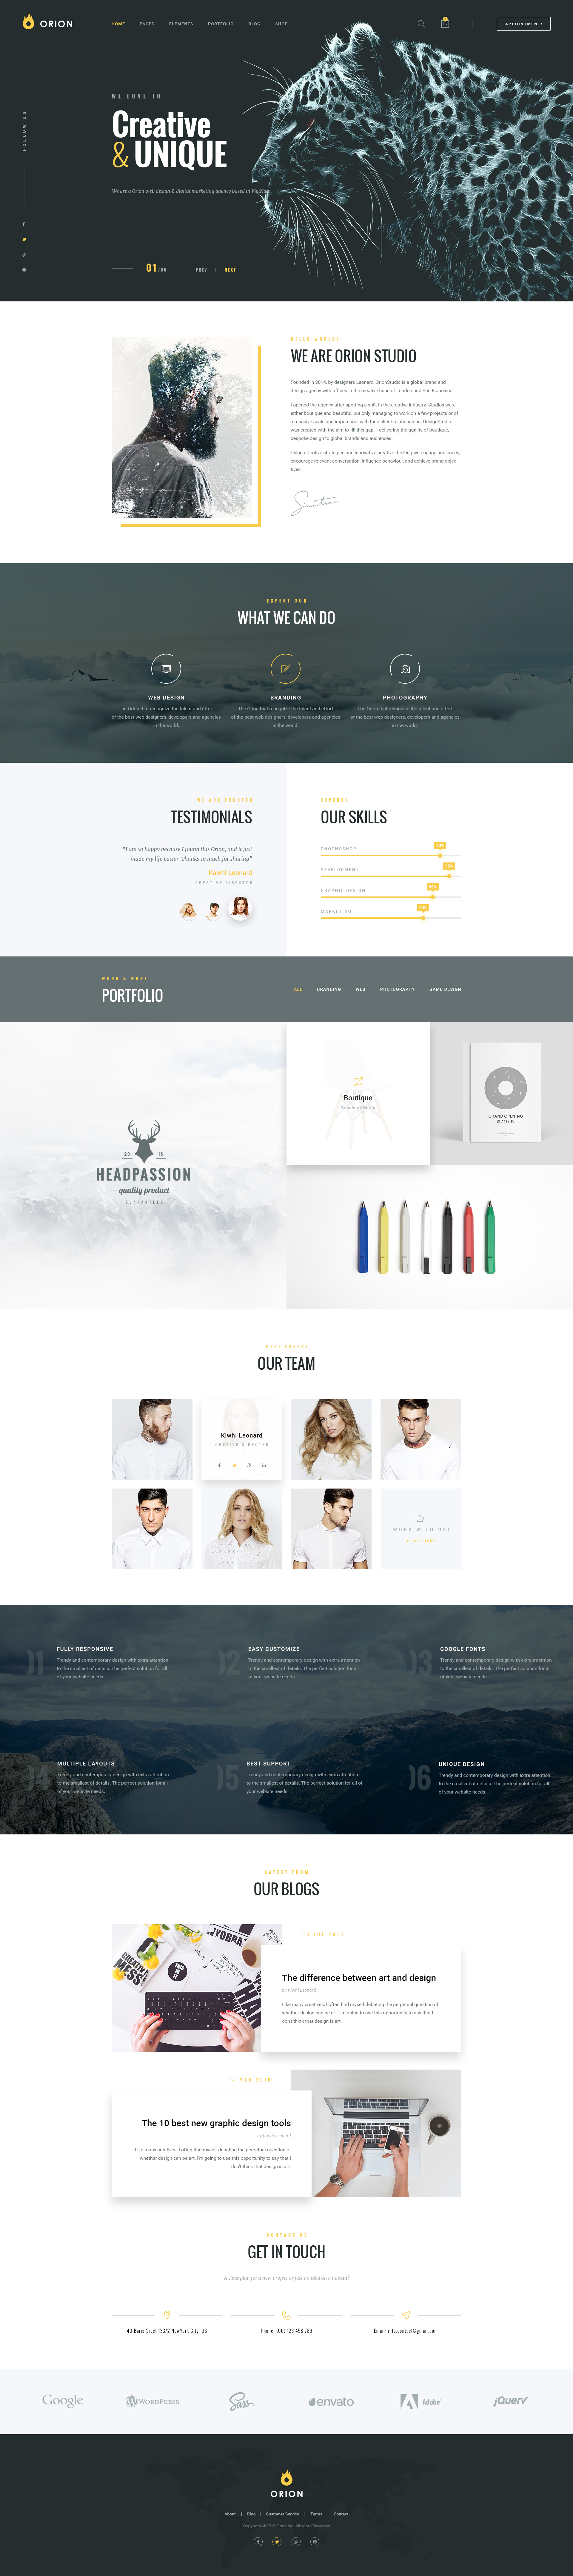 Orion creative multi purpose psd template by leonarddesign orion creative multi purpose psd template toneelgroepblik Image collections